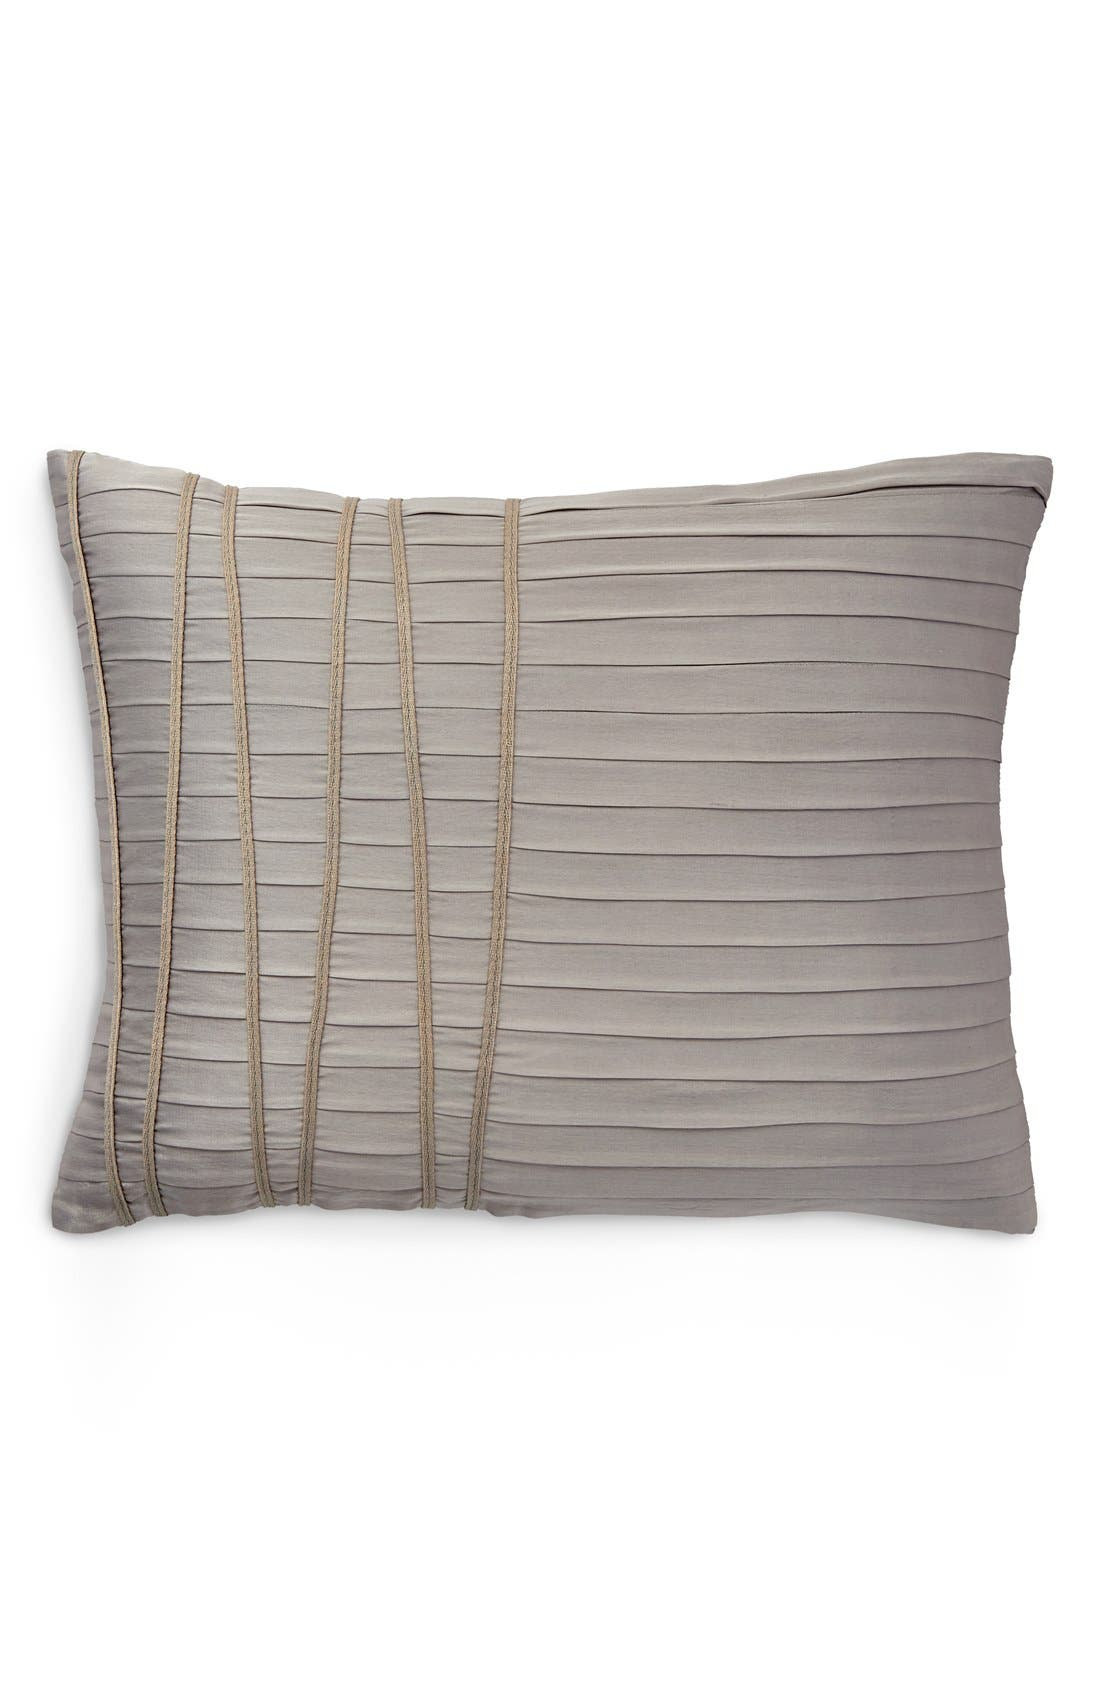 "Image of Donna Karan Silver Reflection Accent Pillow - 16""x20"""